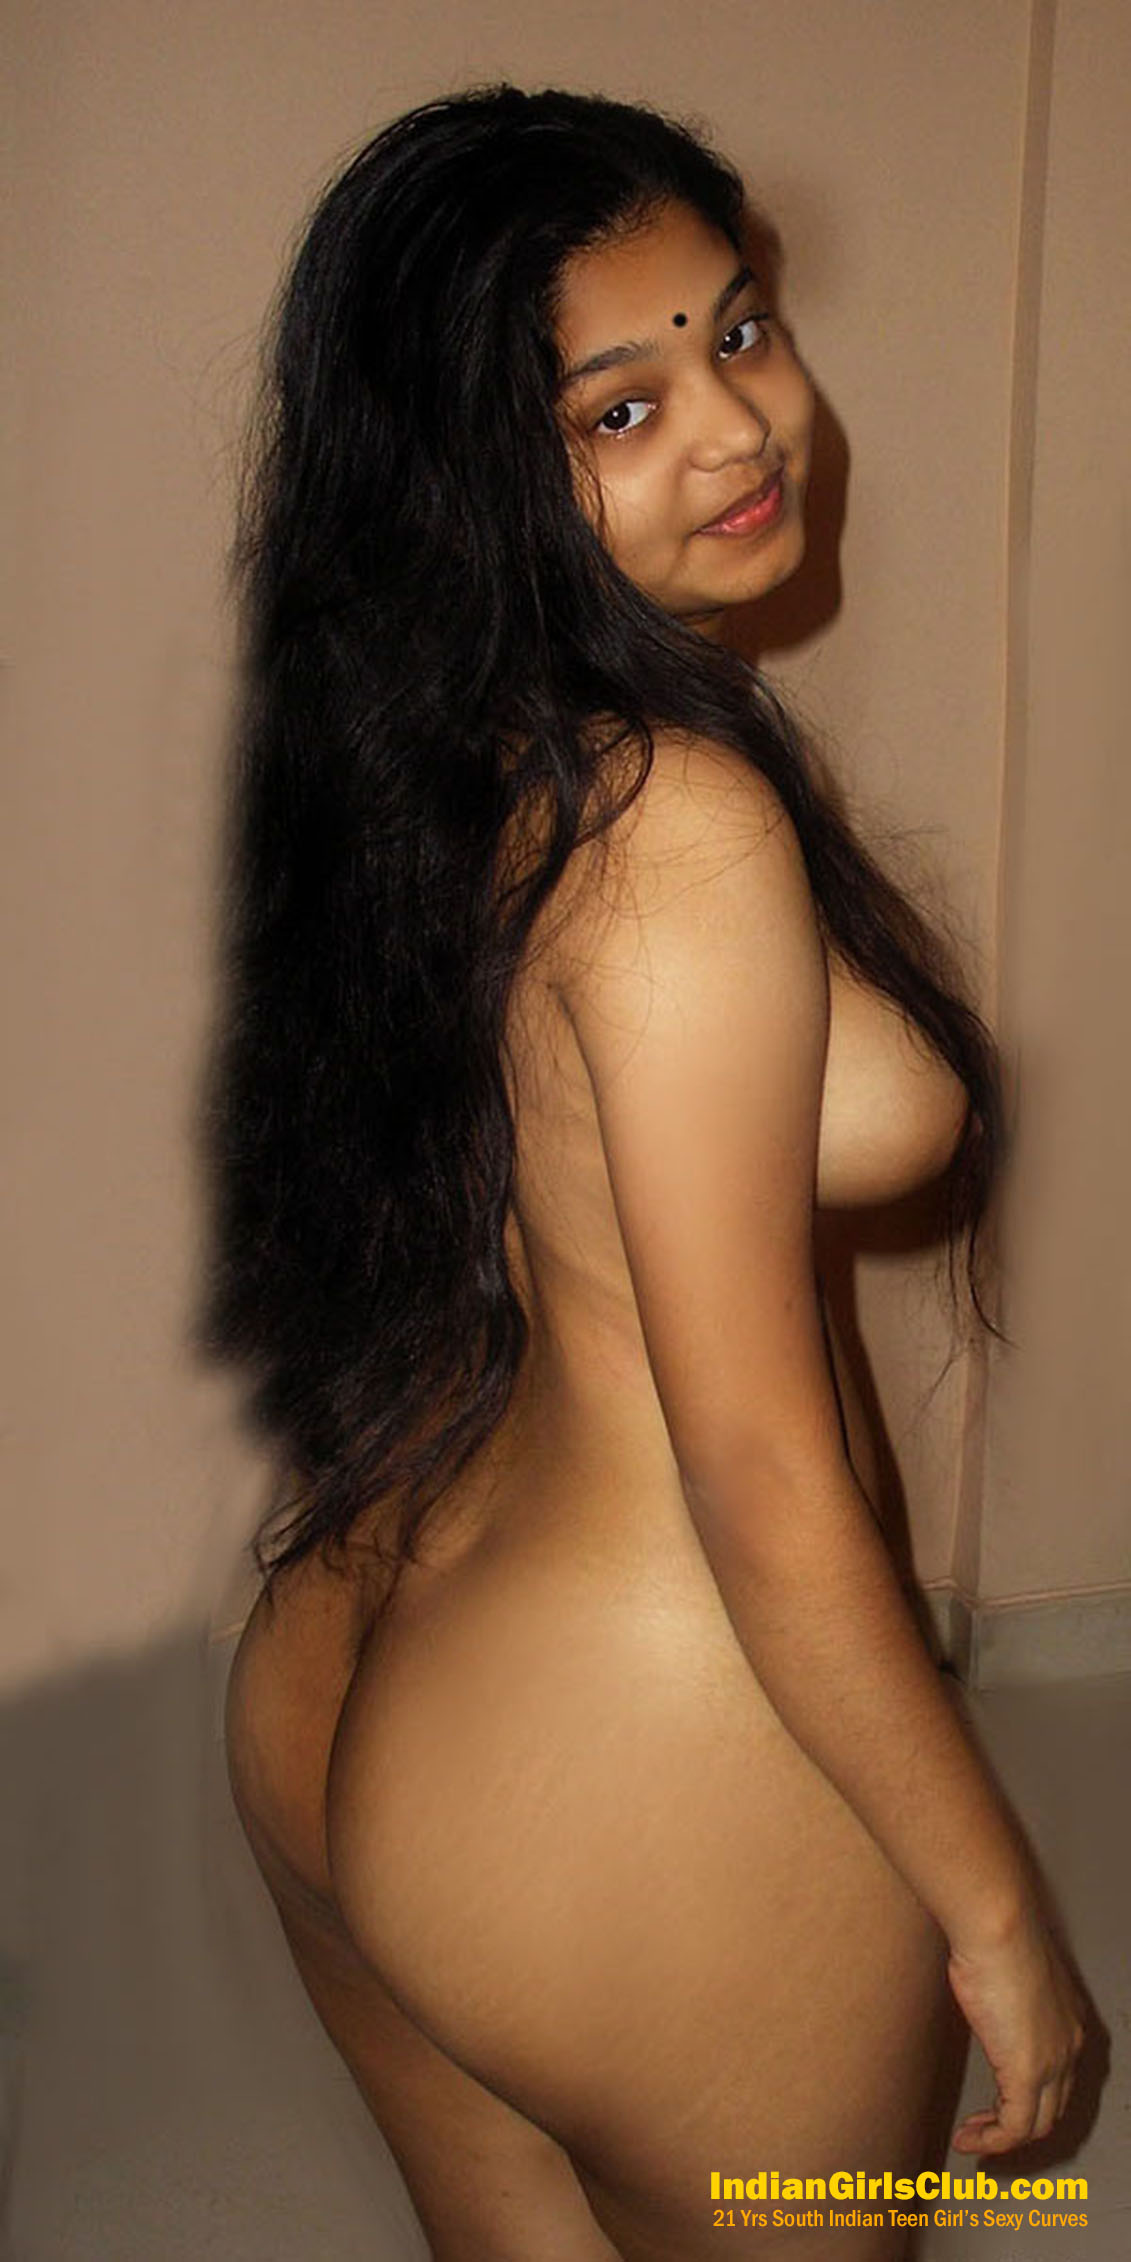 21 Yrs South Indian Teen Girl's Sexy Curves